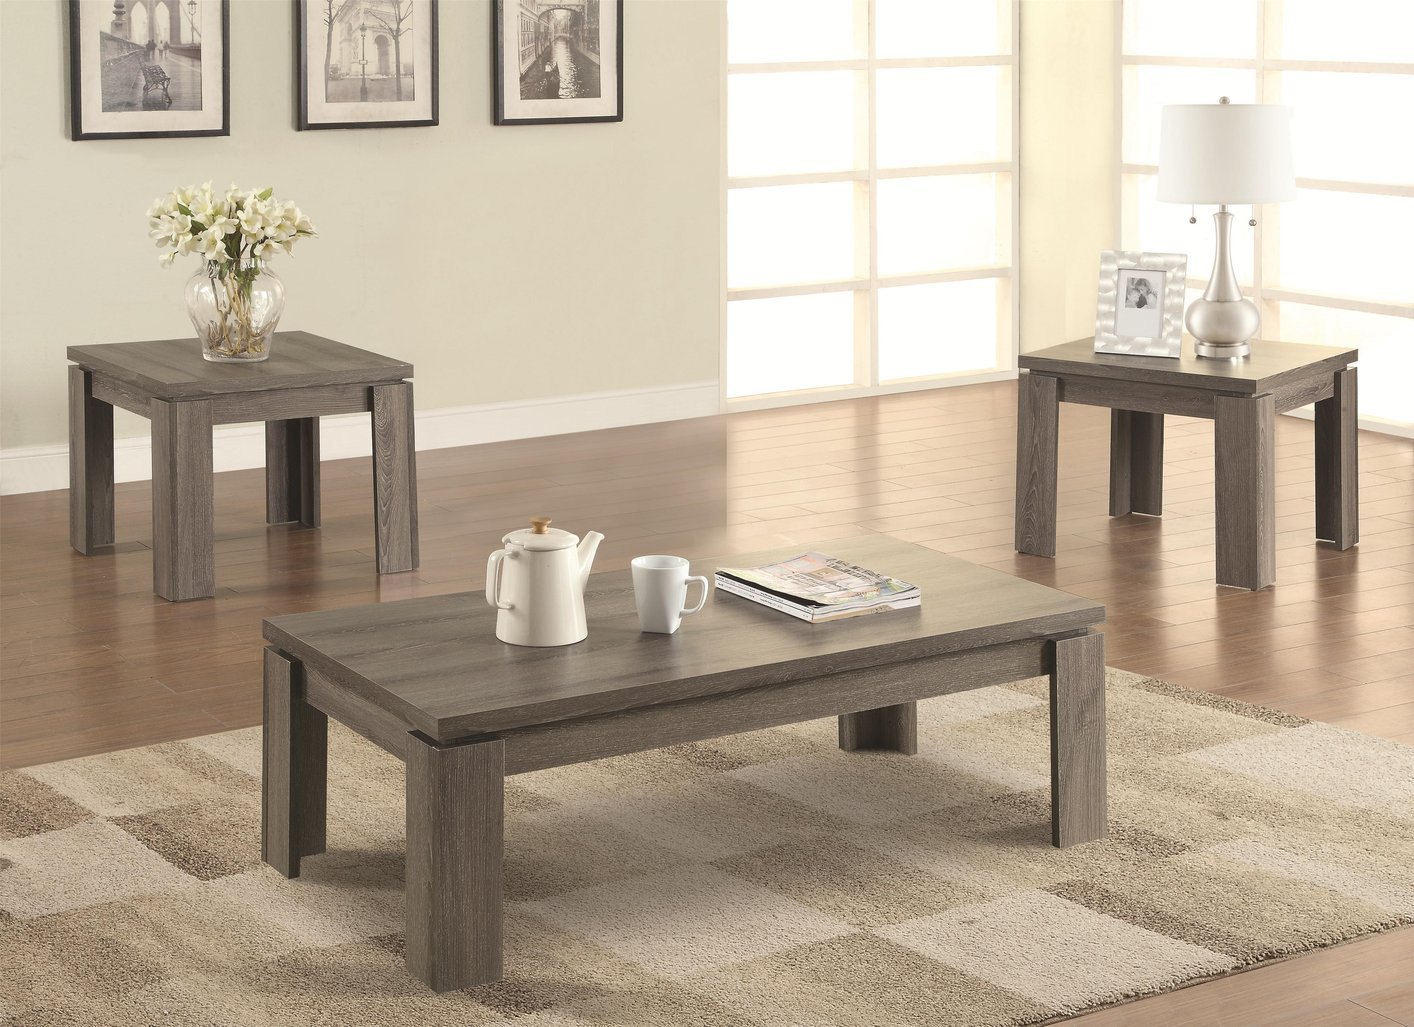 coffee table excellent occasional sets fascinating gray rectangle and square vintage wooden stained design wood accent kmart outdoor chairs mirrored bedroom furniture pub garden